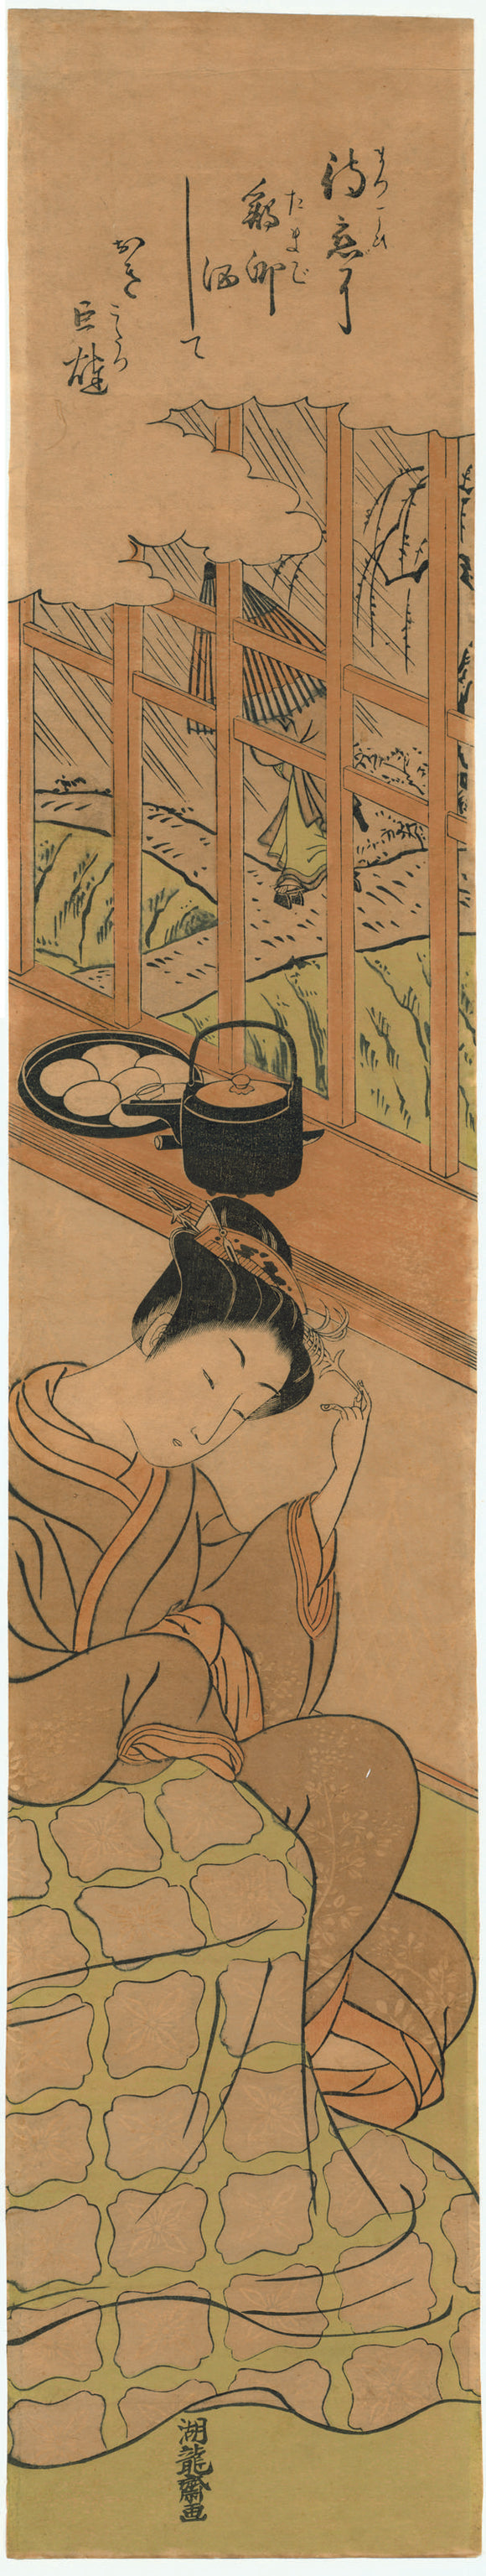 Isoda Koryūsai: Seated Courtesan Waiting for her Lover